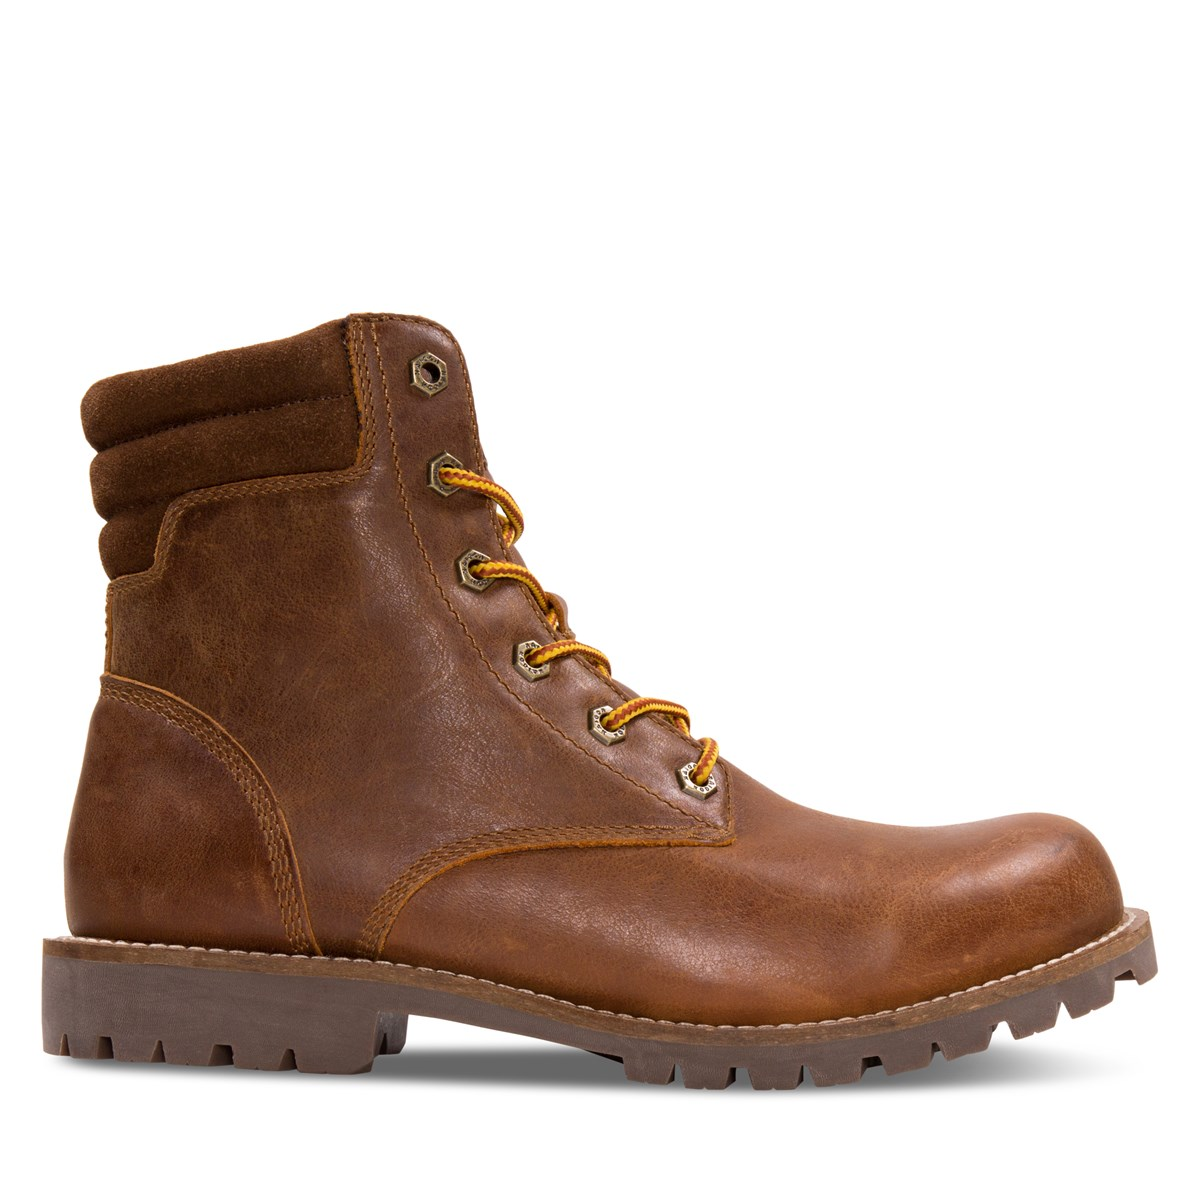 Men's Magog Boots in Brown